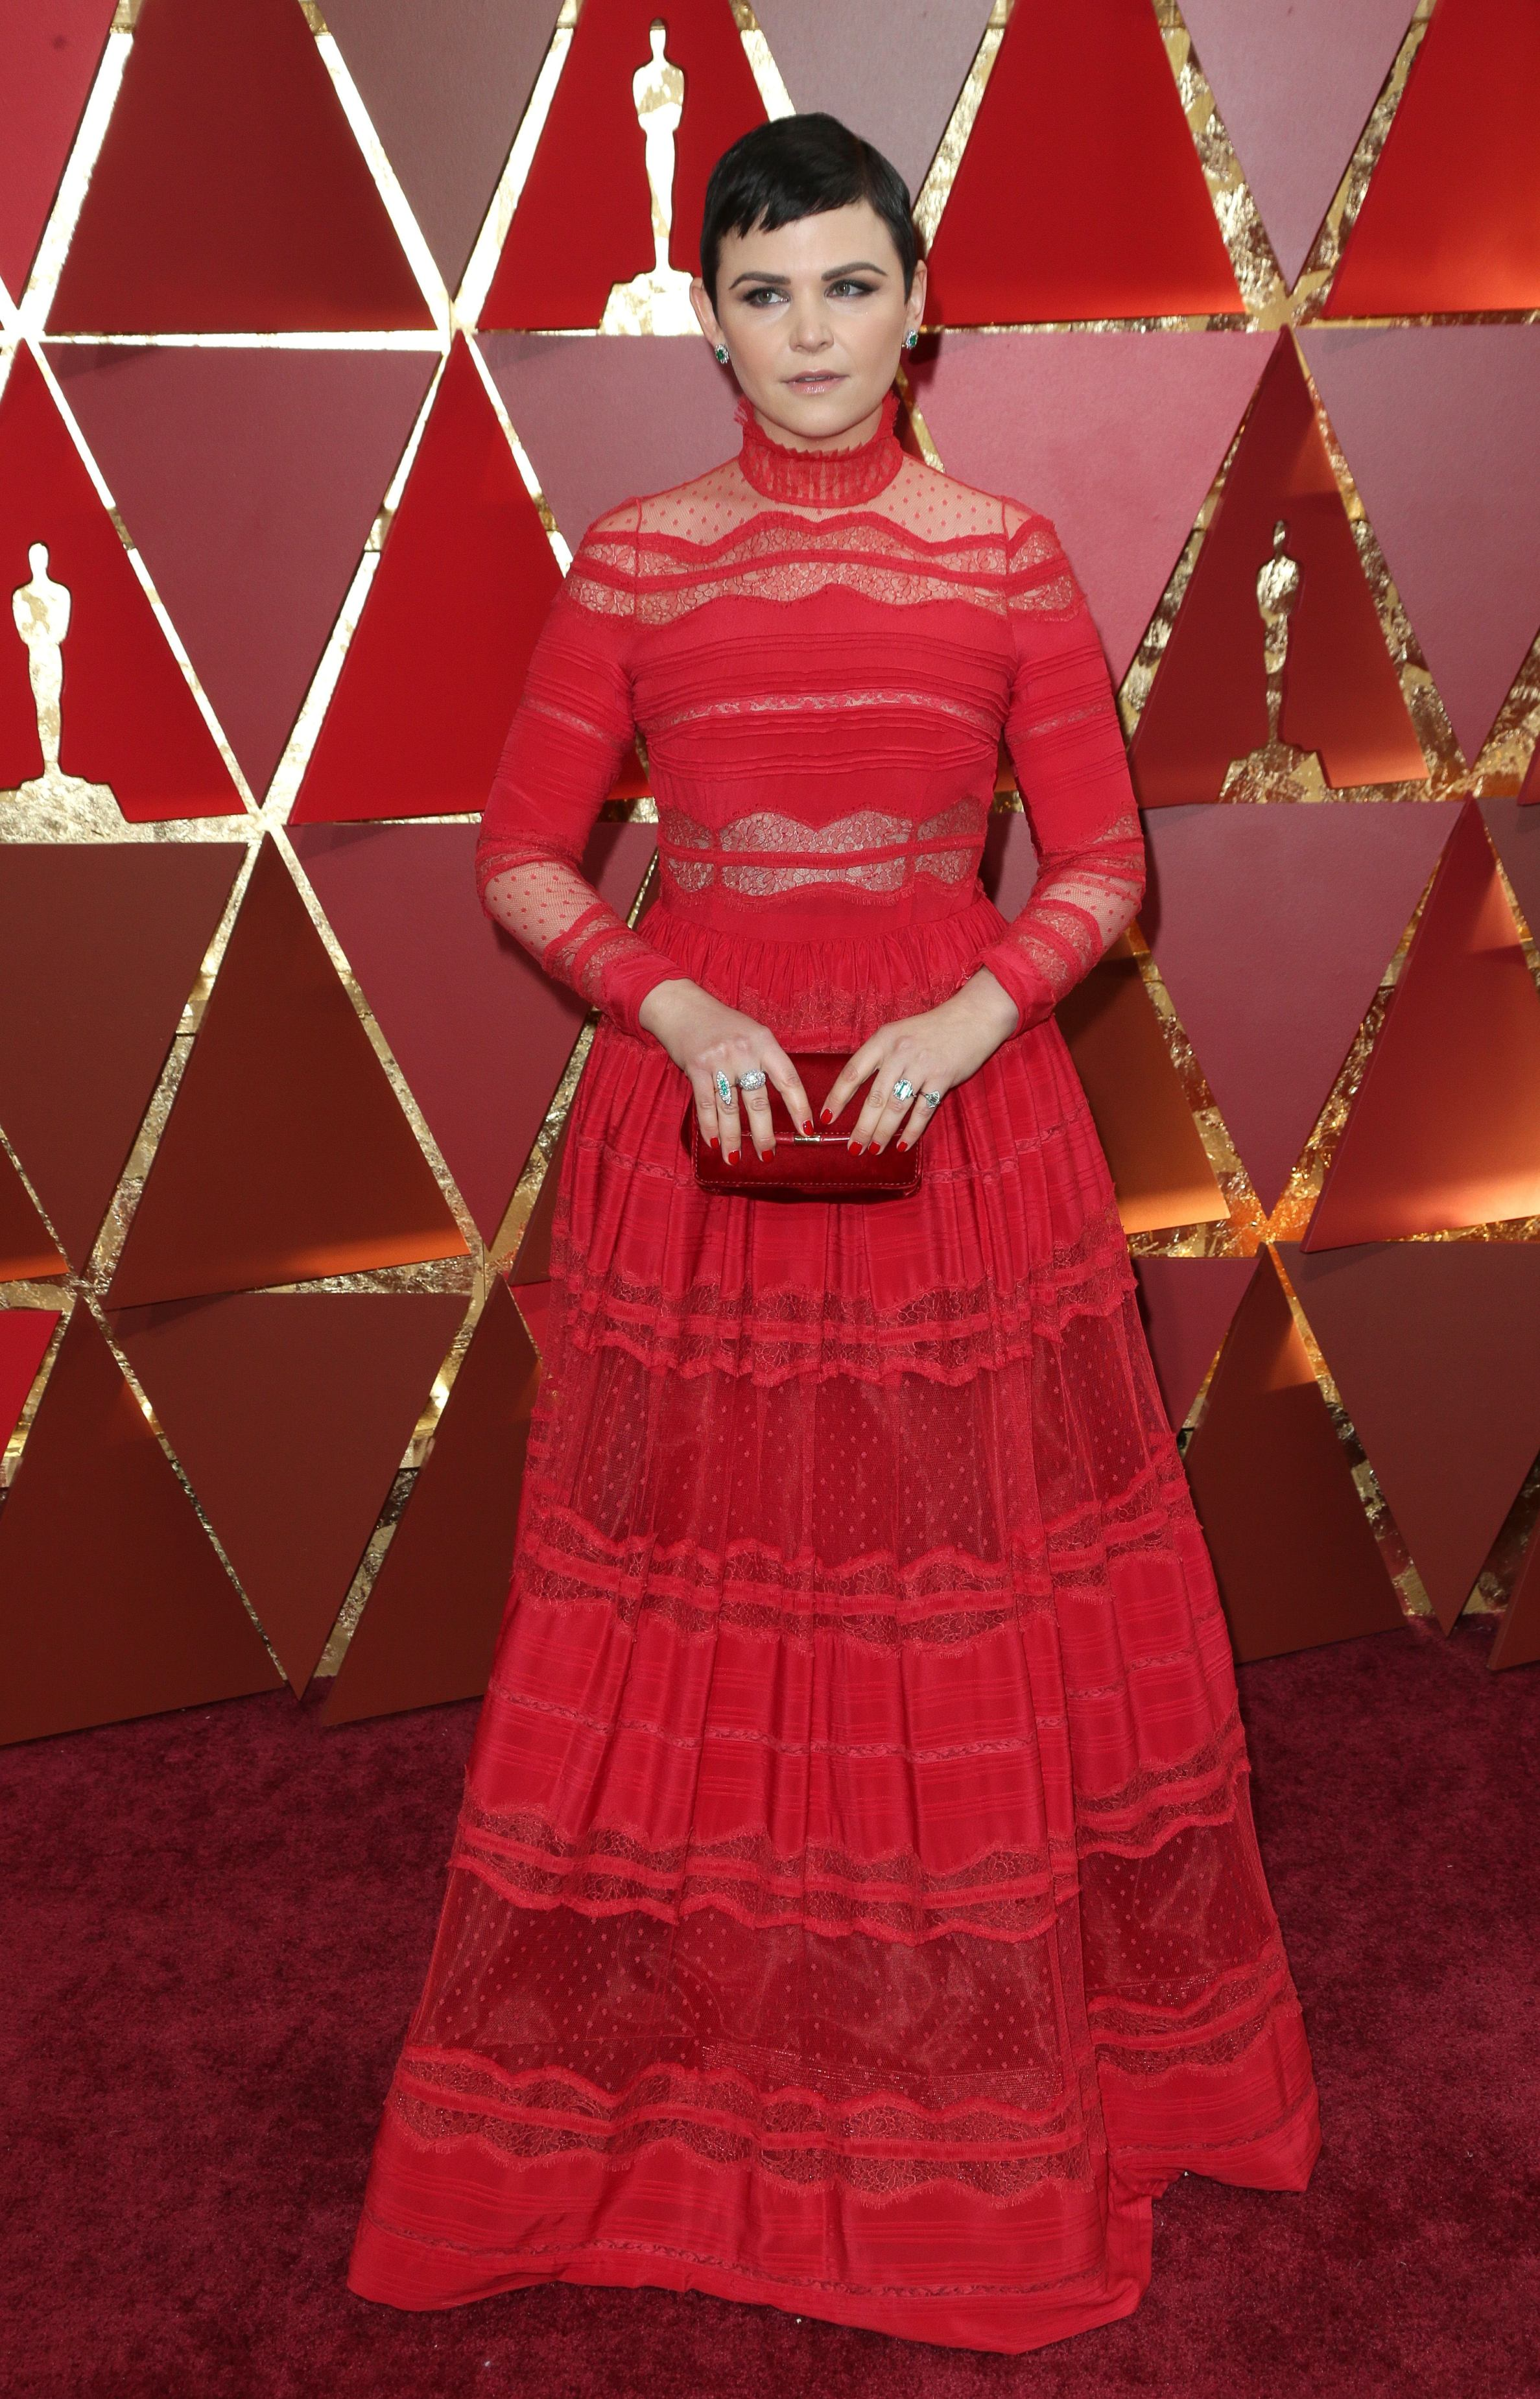 Mandatory Credit: Photo by Jim Smeal/BEI/Shutterstock (8434881un) Ginnifer Goodwin 89th Annual Academy Awards, Arrivals, Los Angeles, USA - 26 Feb 2017